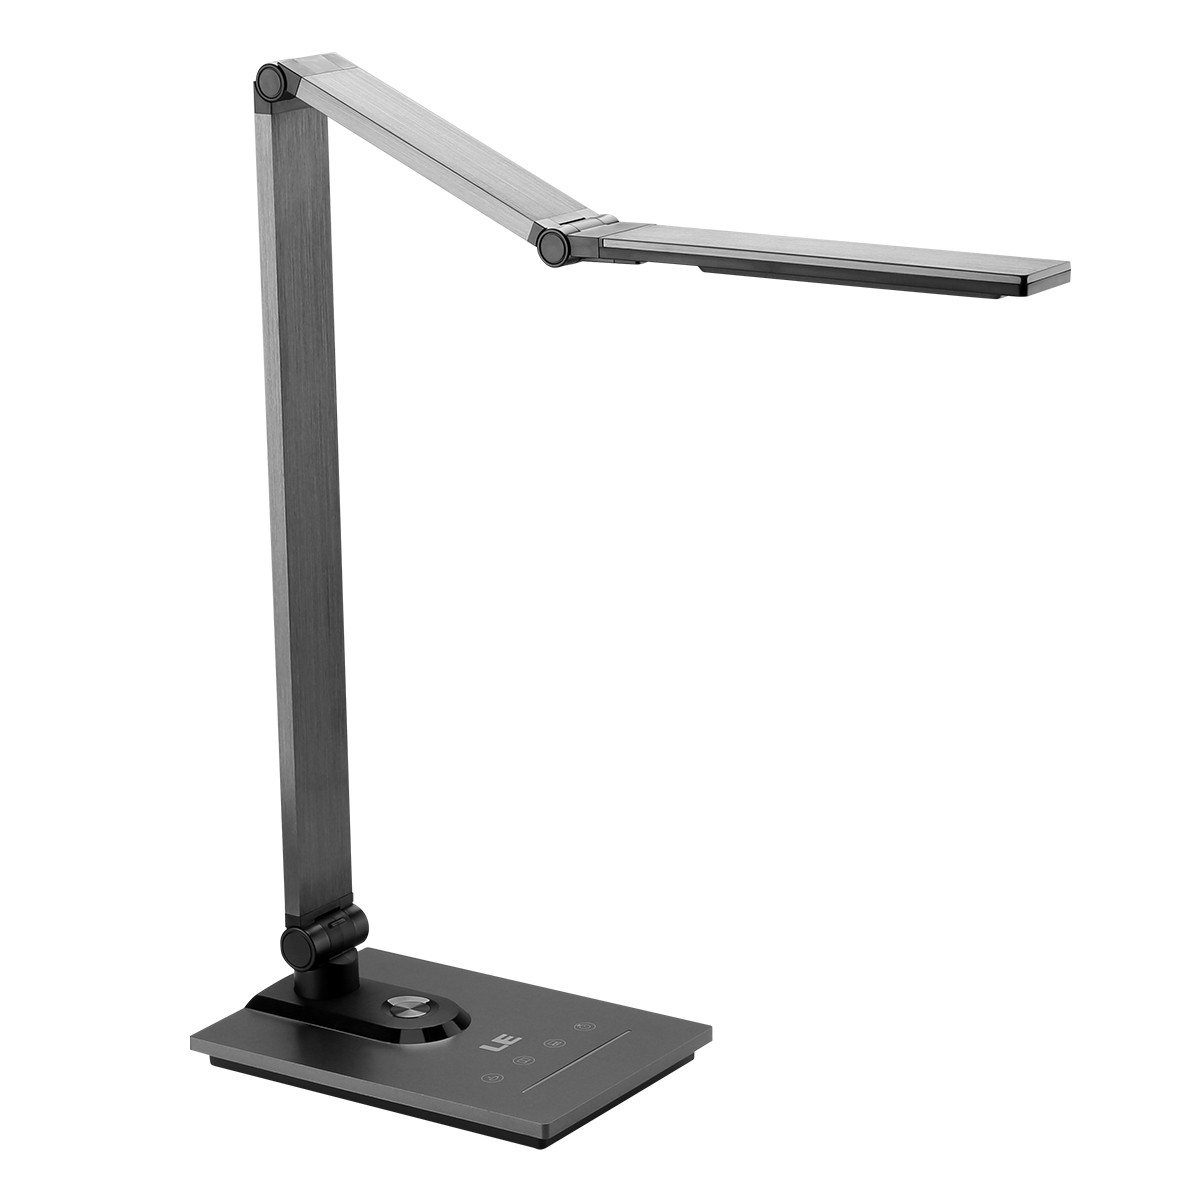 Best ideas about Led Desk Lamps . Save or Pin LED Desk Lamp Dimmable 3 level Color Temperature Mode USB Now.